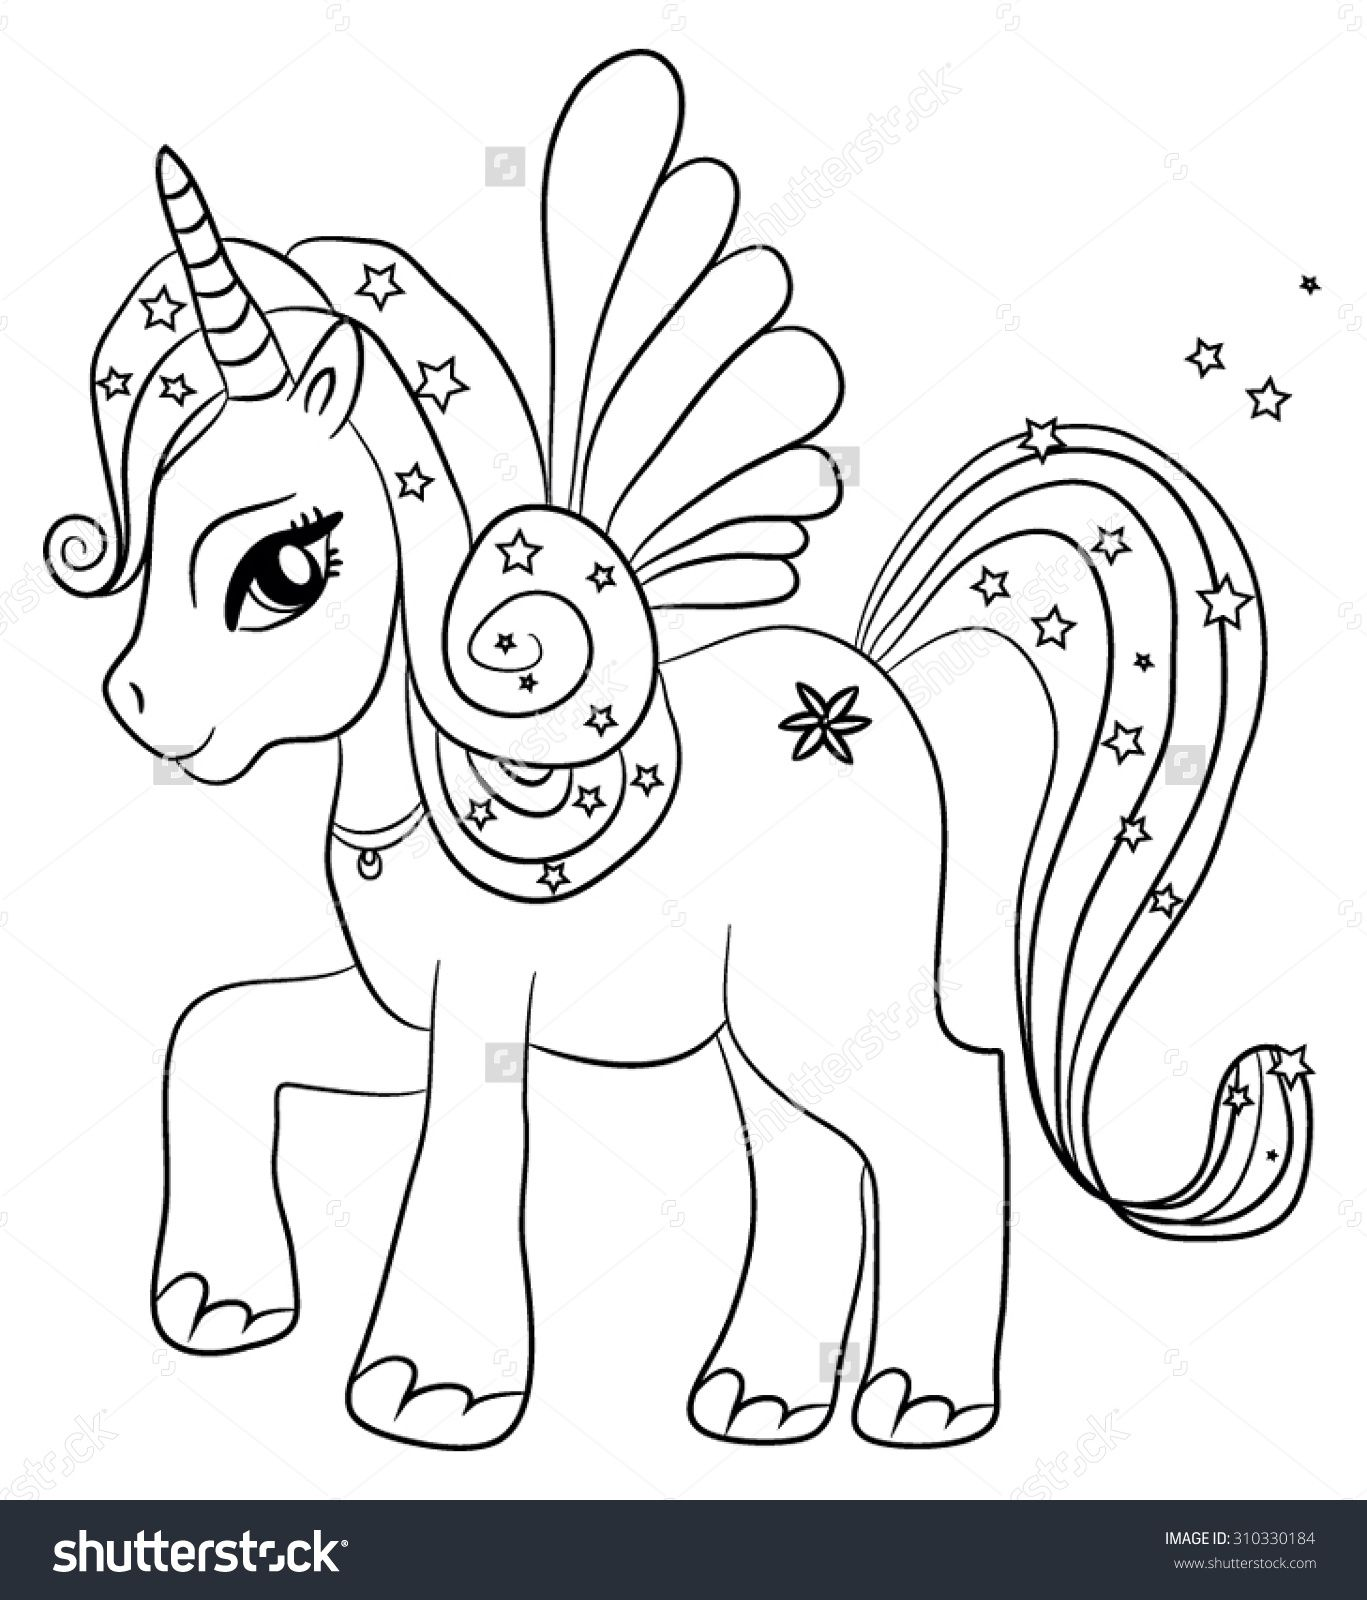 Unicorn Coloring Page Designs Animal Coloring Pages Fairy Coloring Pages Unicorn Coloring Pages